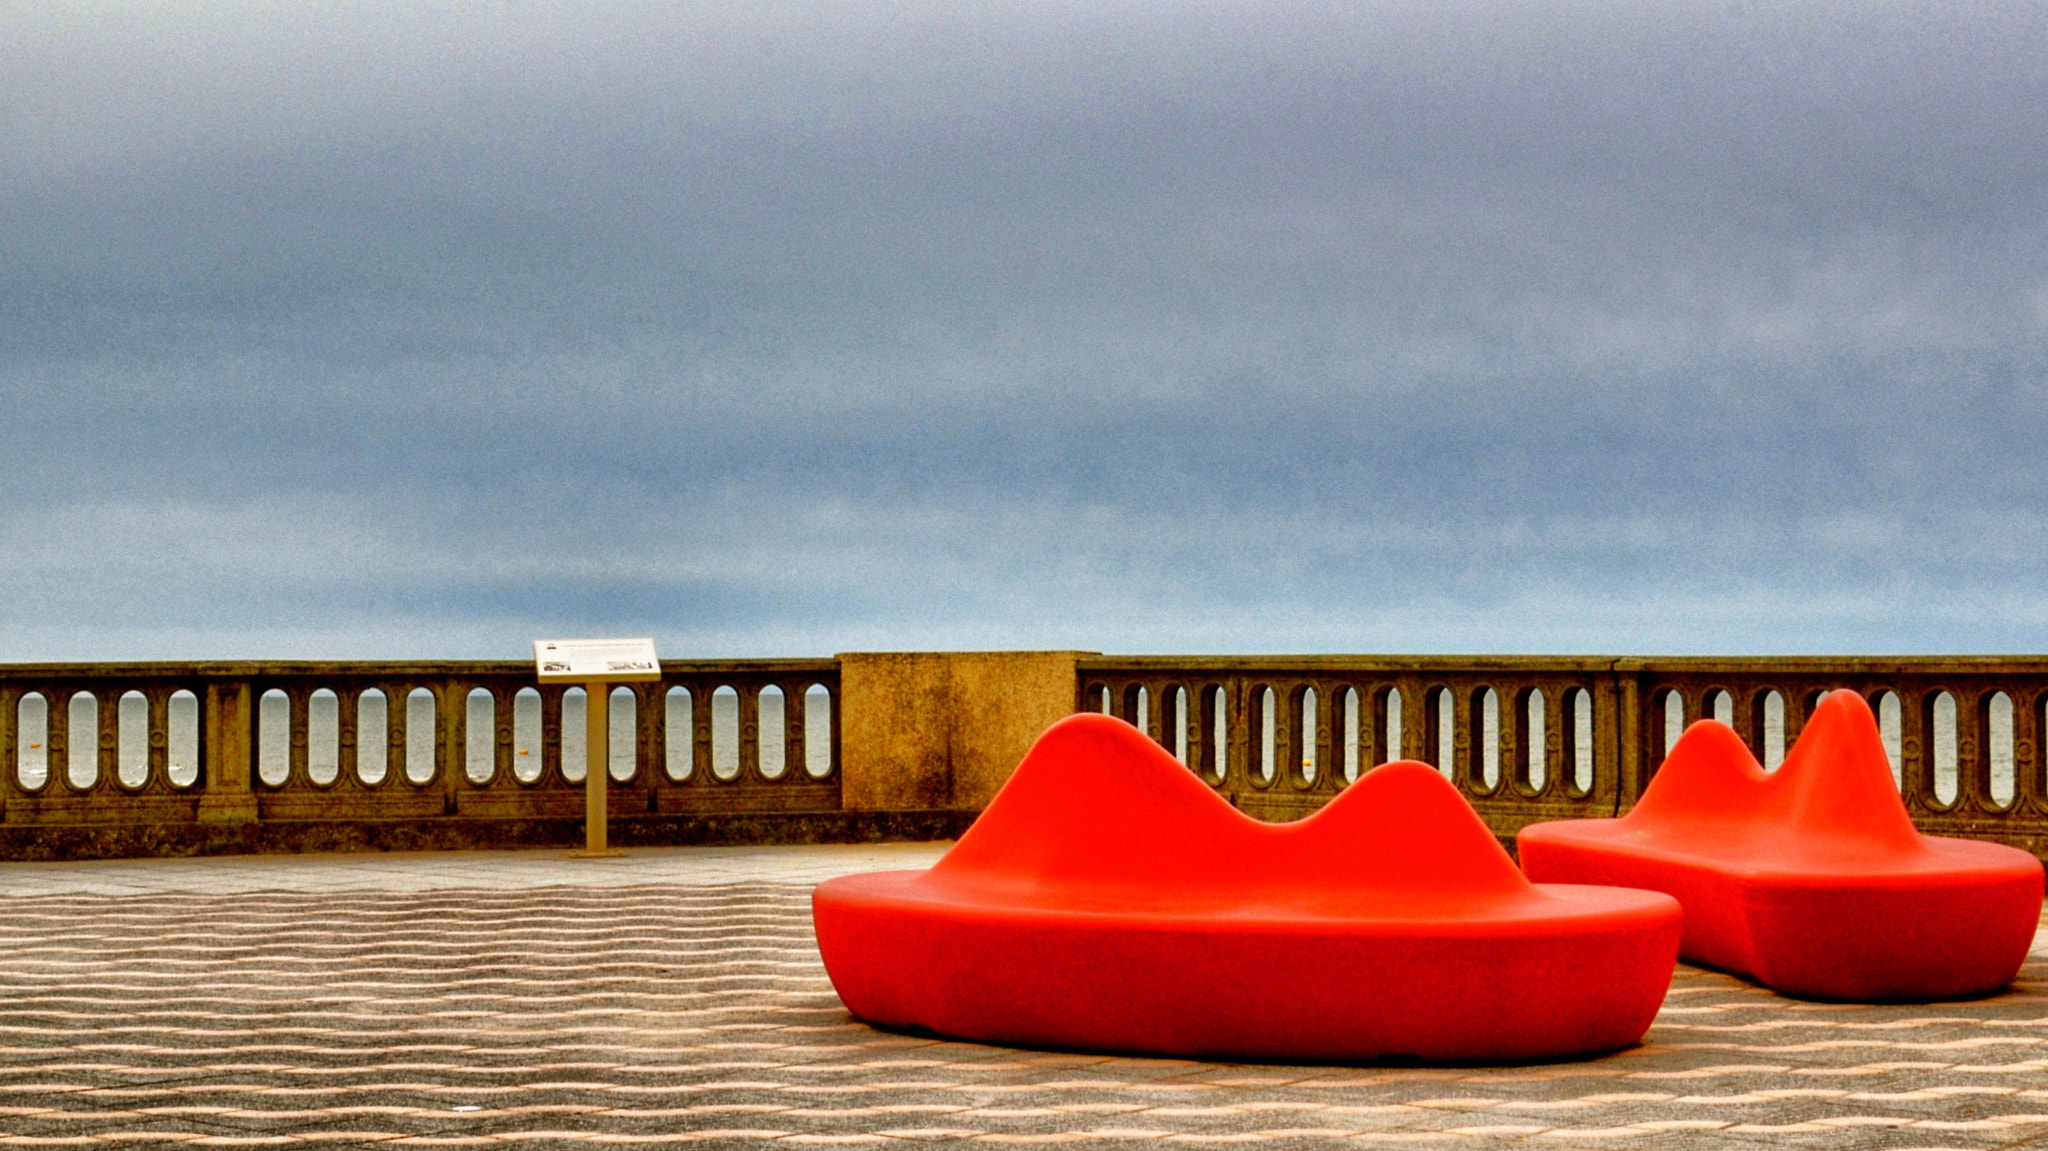 Photograph Cabourg by Thierry T on 500px